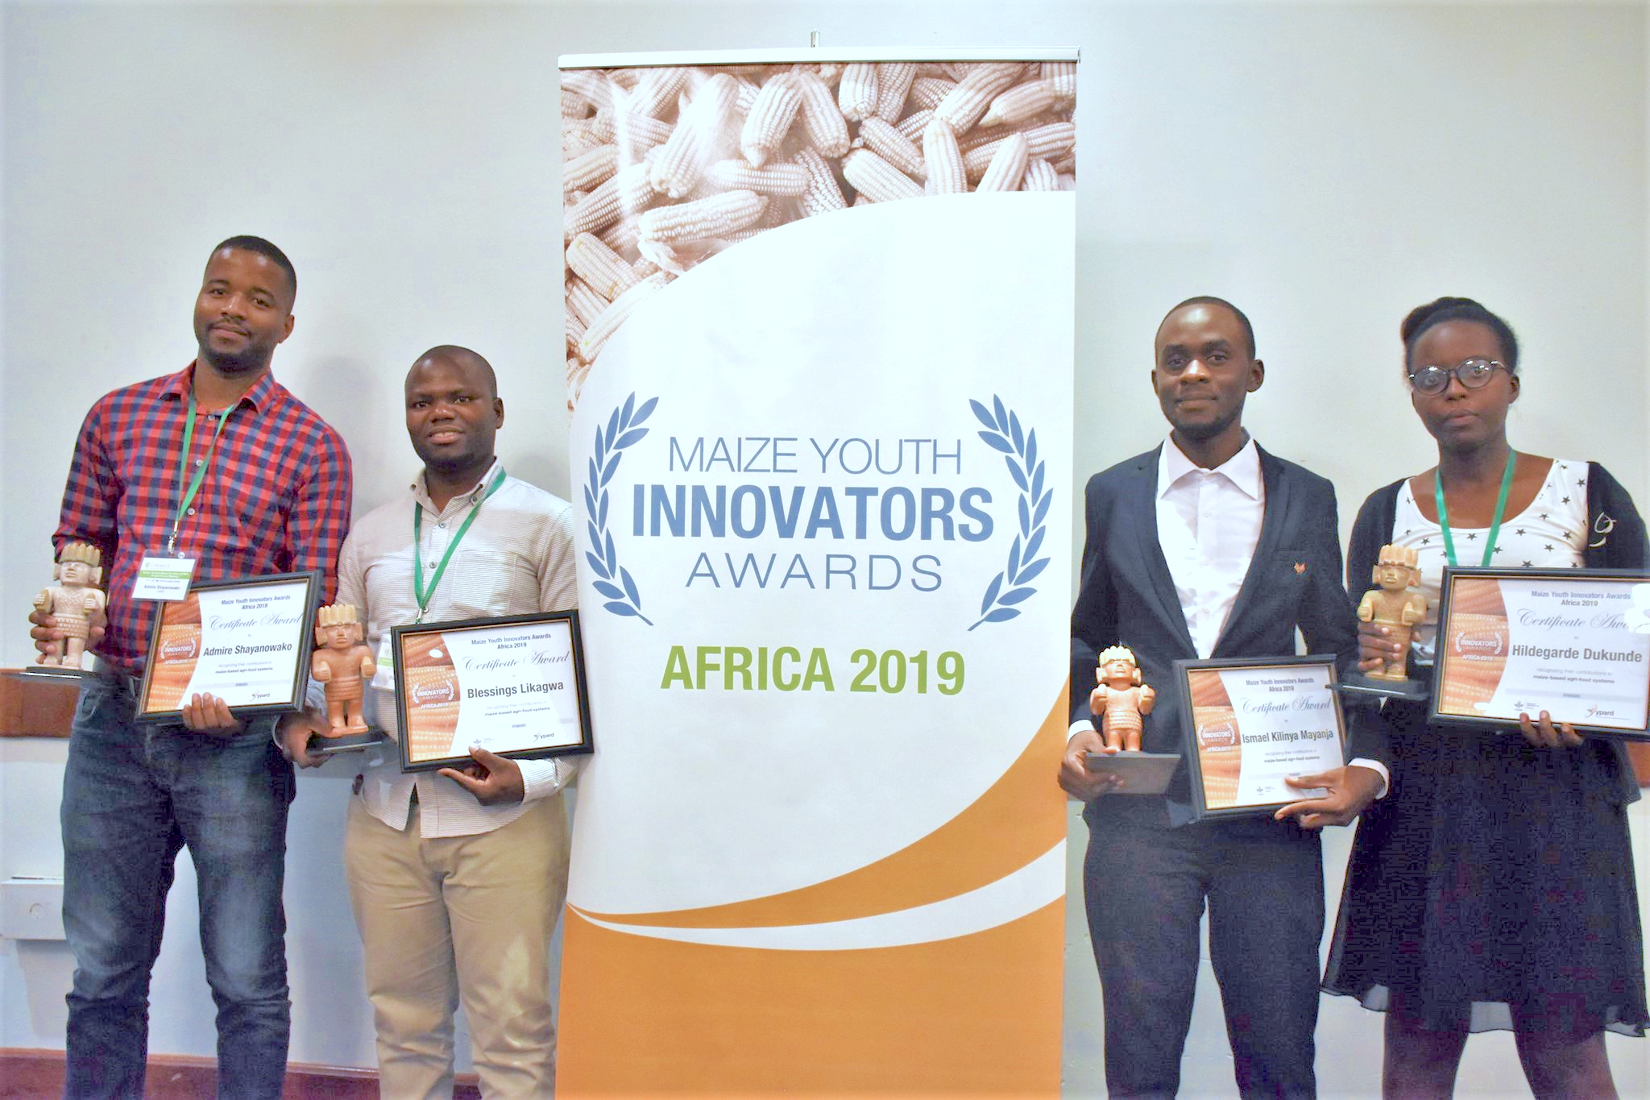 Winners of the 2019 MAIZE Youth Innovators Awards – Africa receive their awards at the STMA meeting in Lusaka, Zambia. From left to right: Admire Shayanowako, Blessings Likagwa, Ismael Mayanja and Hildegarde Dukunde. Fifth awardee Mila Lokwa Giresse not pictured. (Photo: J.Bossuet/CIMMYT)